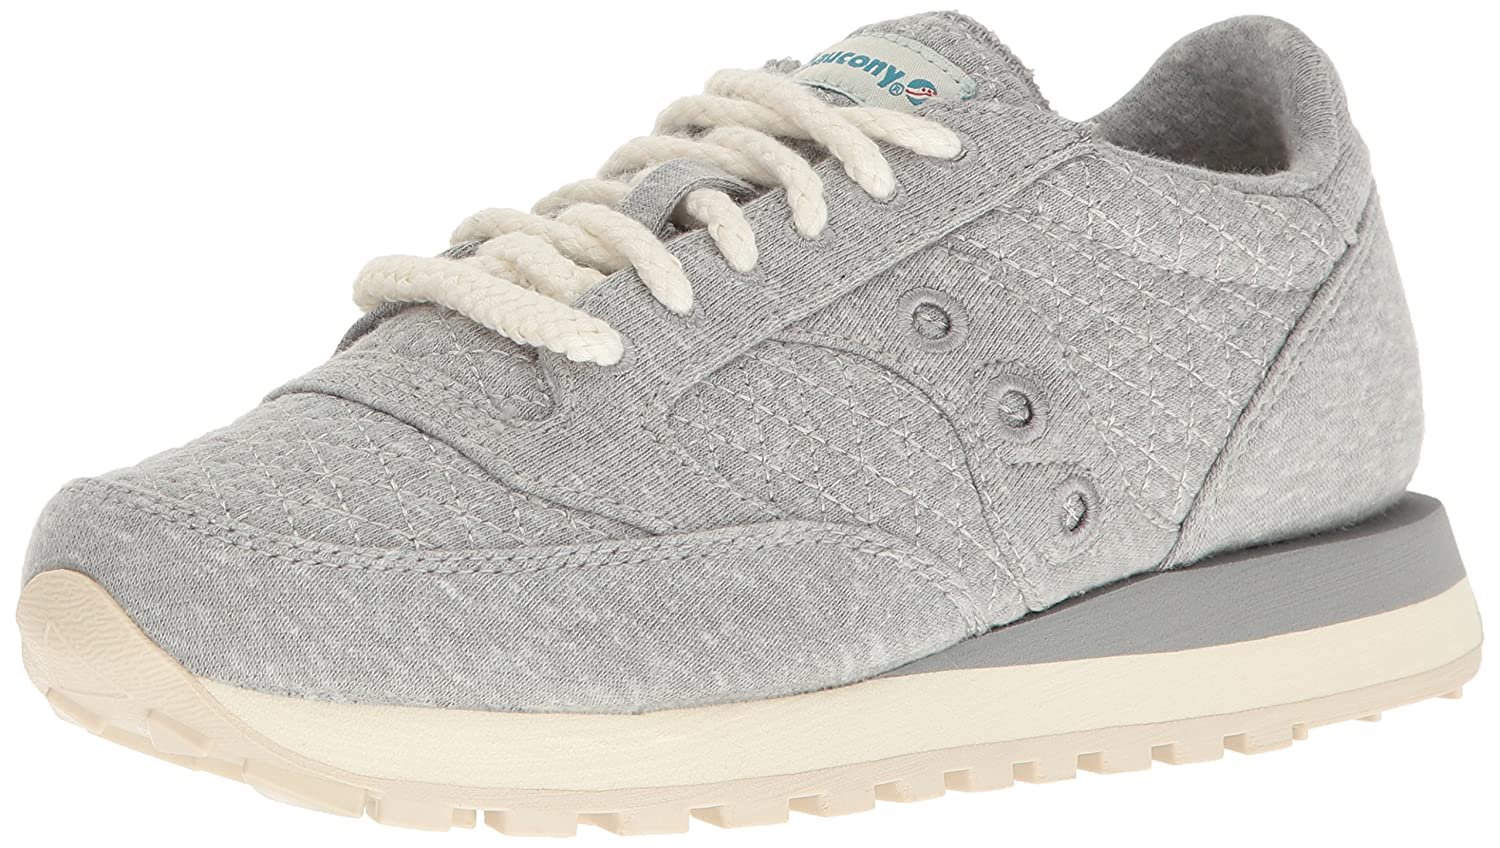 Saucony Originals Women's Jazz CL Cozy Sneaker B005BDY45I 9 B(M) US|Grey/Green